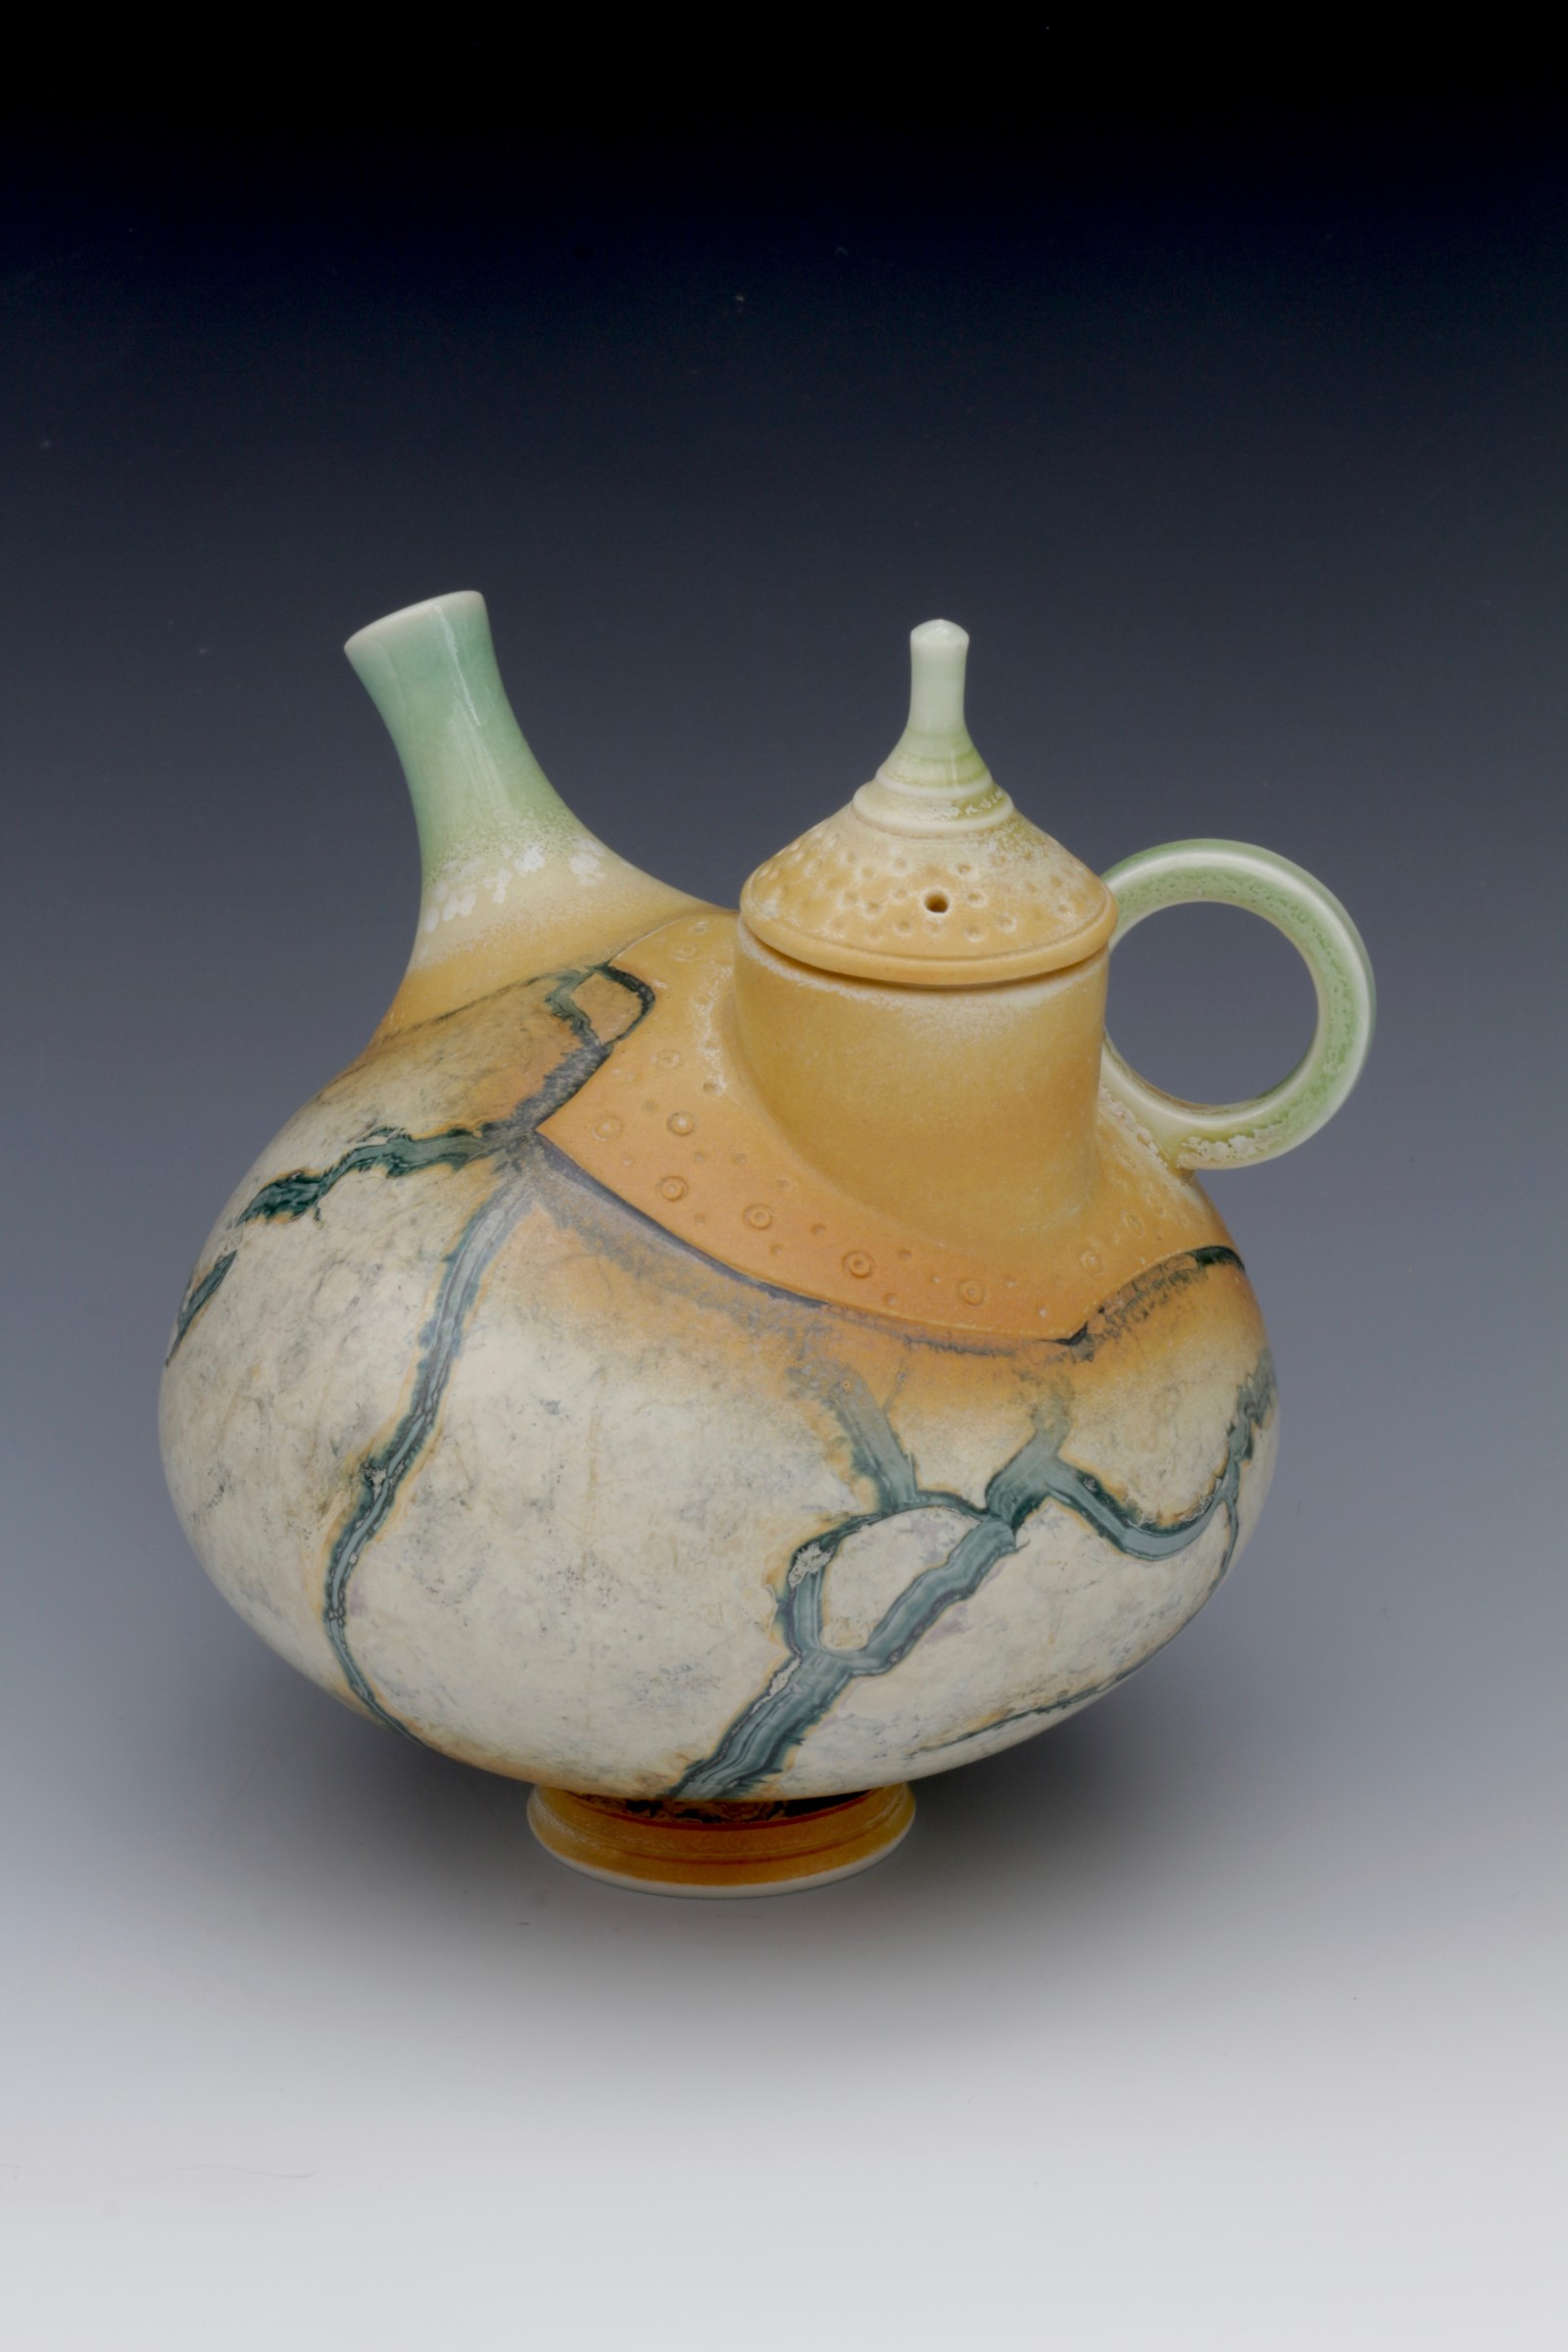 "<span class=""link fancybox-details-link""><a href=""/artists/61-geoffrey-swindell/works/6322-geoffrey-swindell-teapot-2019/"">View Detail Page</a></span><div class=""artist""><strong>Geoffrey Swindell</strong></div> <div class=""title""><em>Teapot</em>, 2019</div> <div class=""signed_and_dated"">Stamped on the bottom</div> <div class=""medium"">Porcelain</div><div class=""copyright_line"">Own Art £40 x 10 months 0% APR</div>"